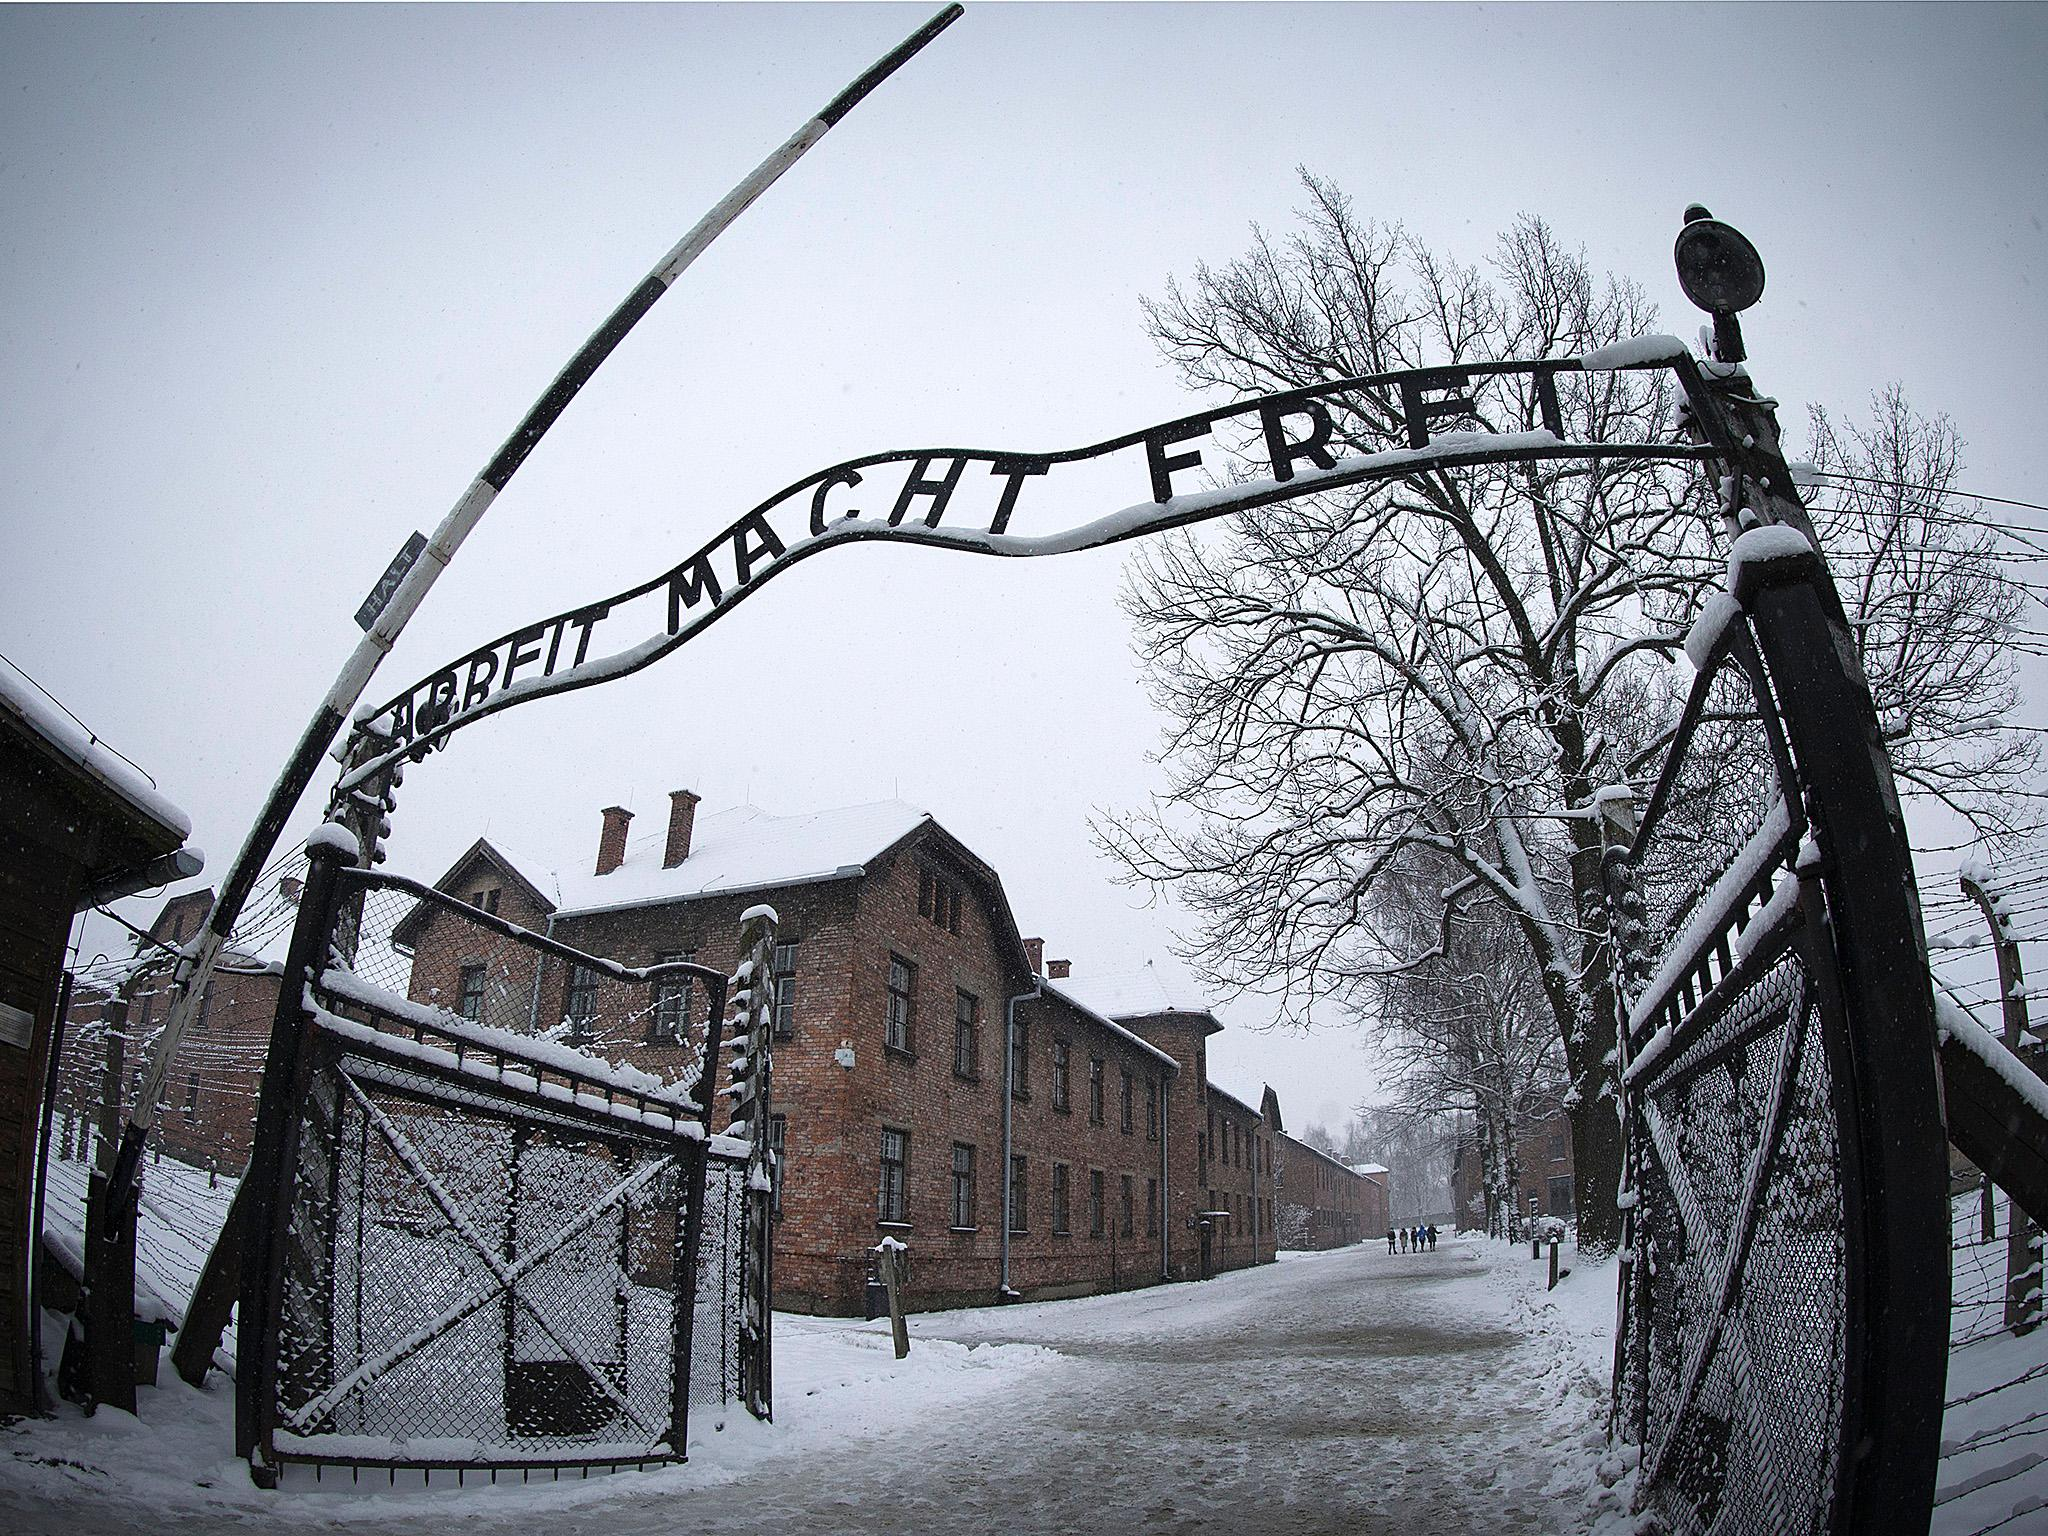 Auschwitz visitors told to stop posing for disrespectful photos at